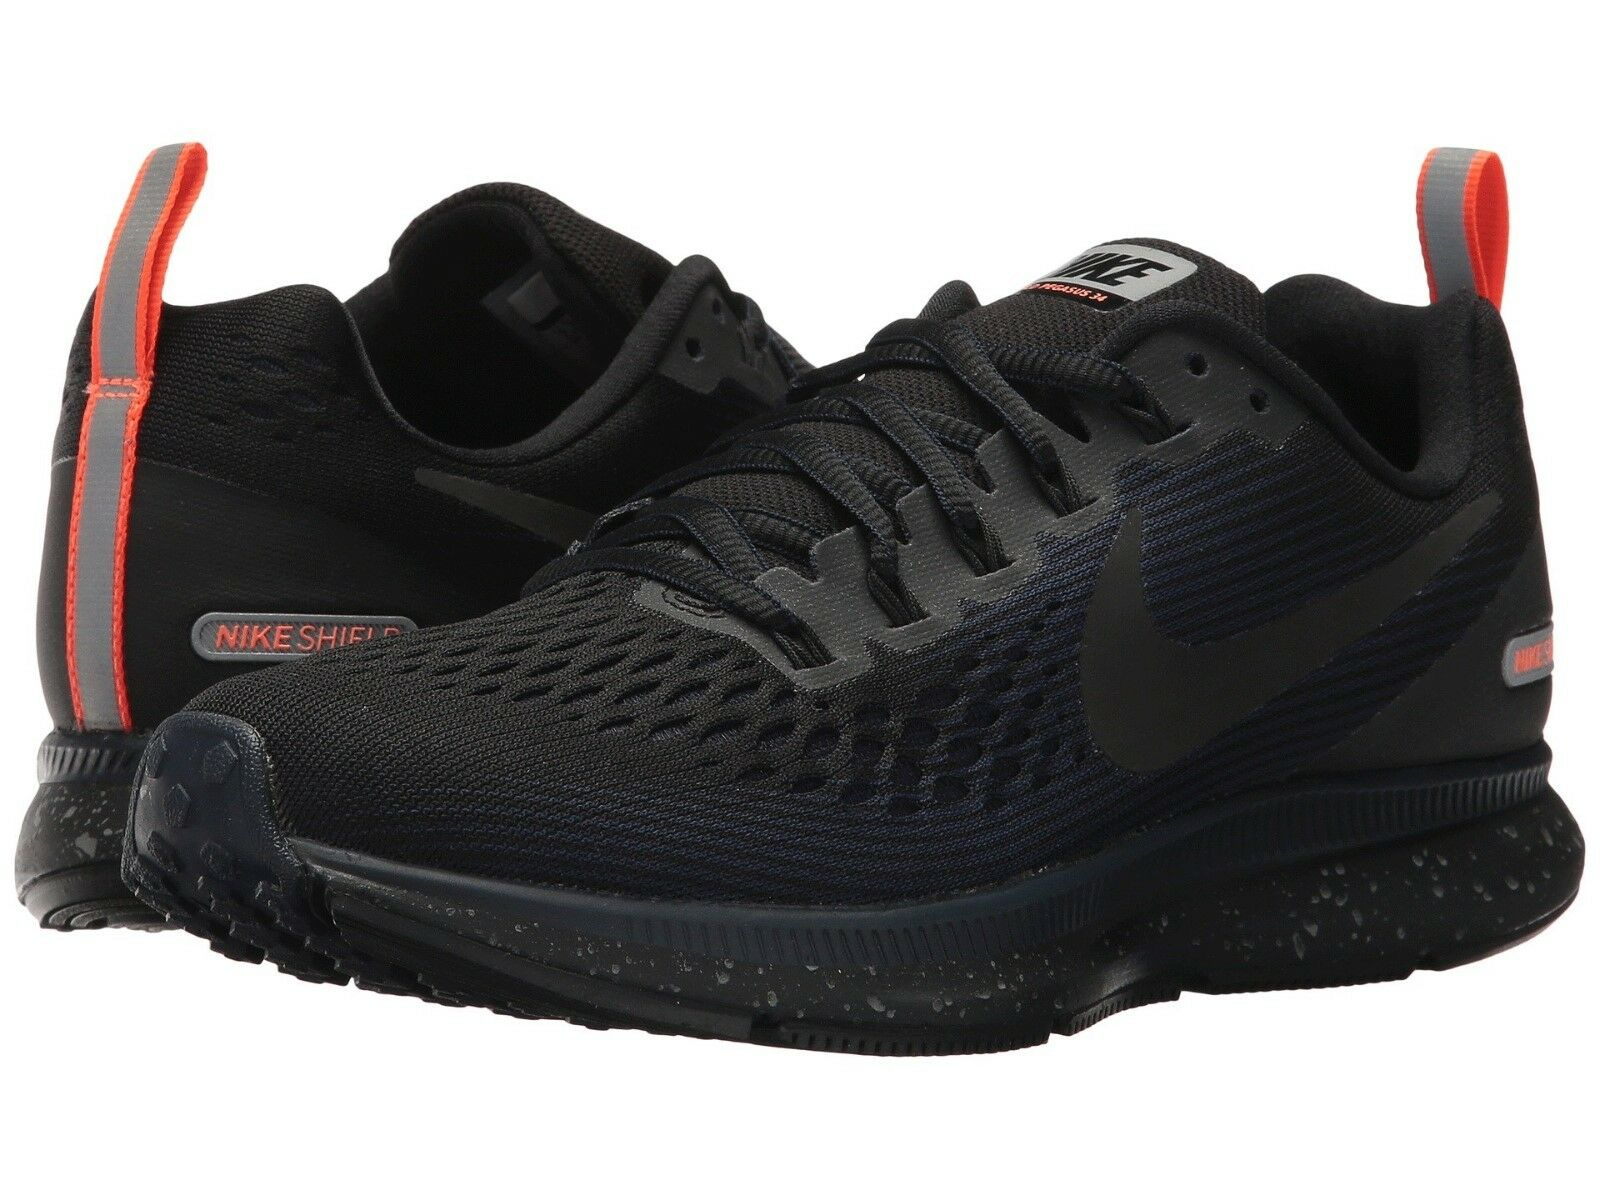 Nike Air Zoom Pegasus 34 34 34 Shield Wmn`s Sizes 7-11 B Black Obsidian 907328-001 NEW 948e2f